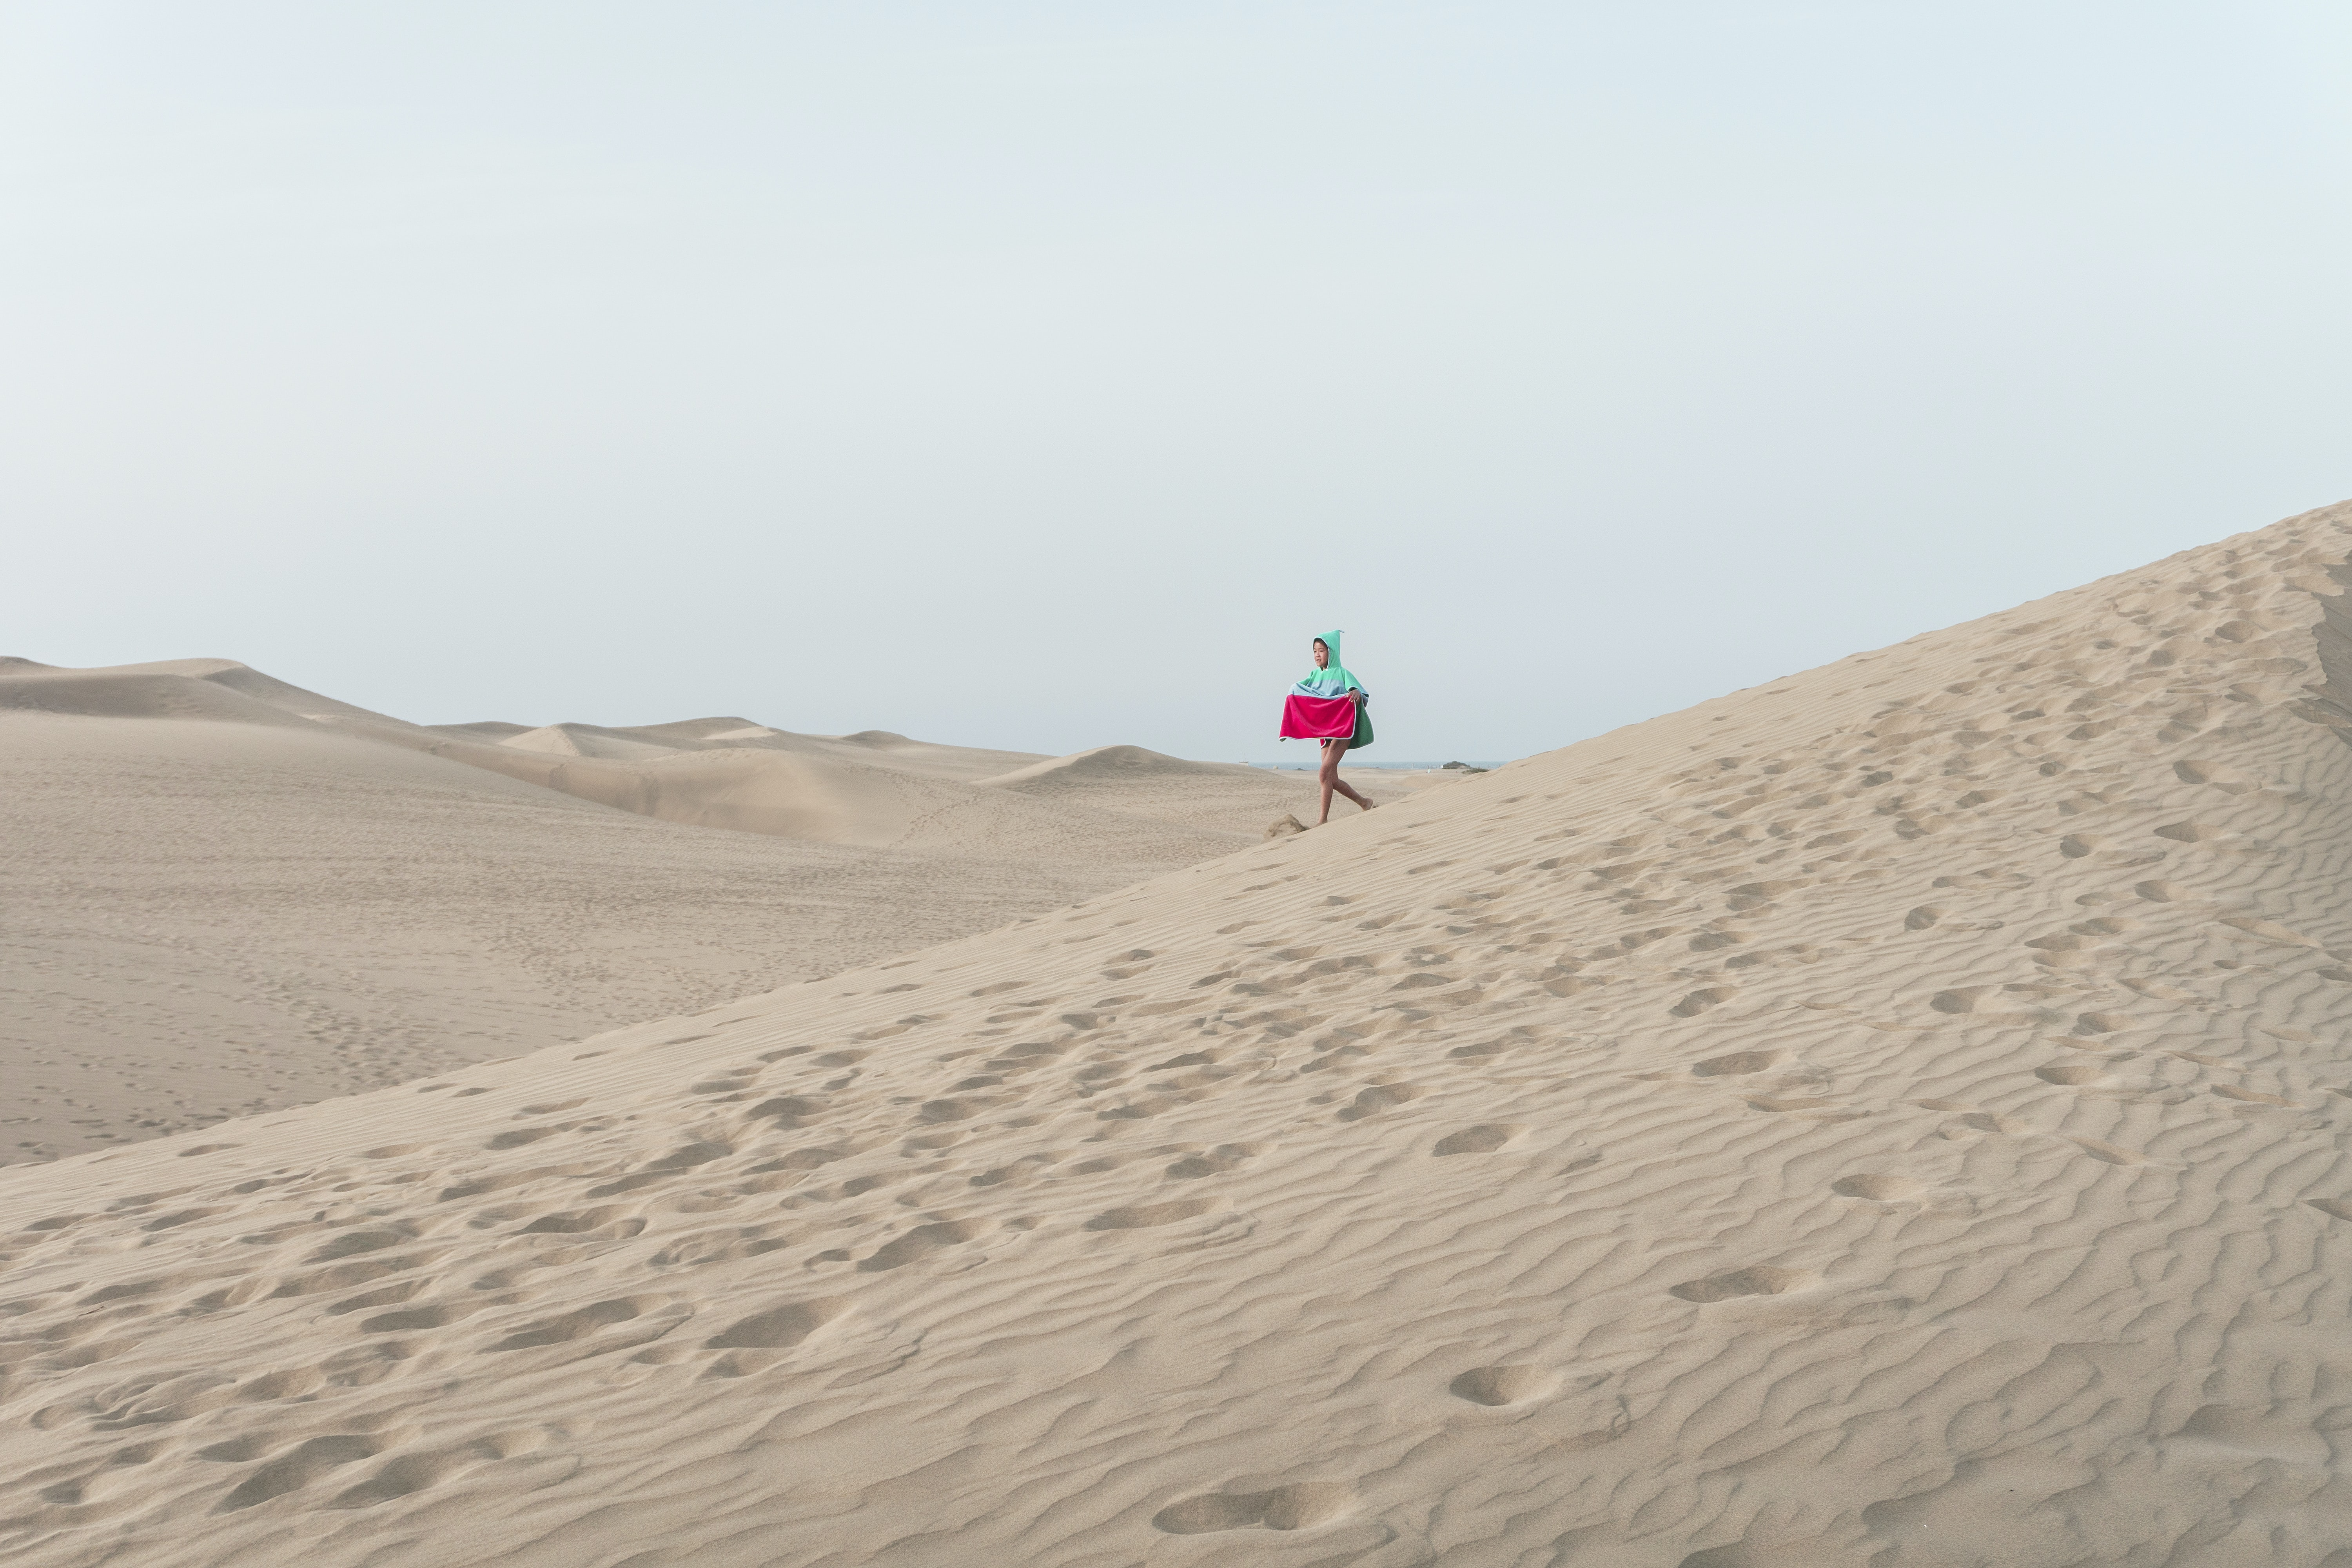 photo of person walking on desert holding red box